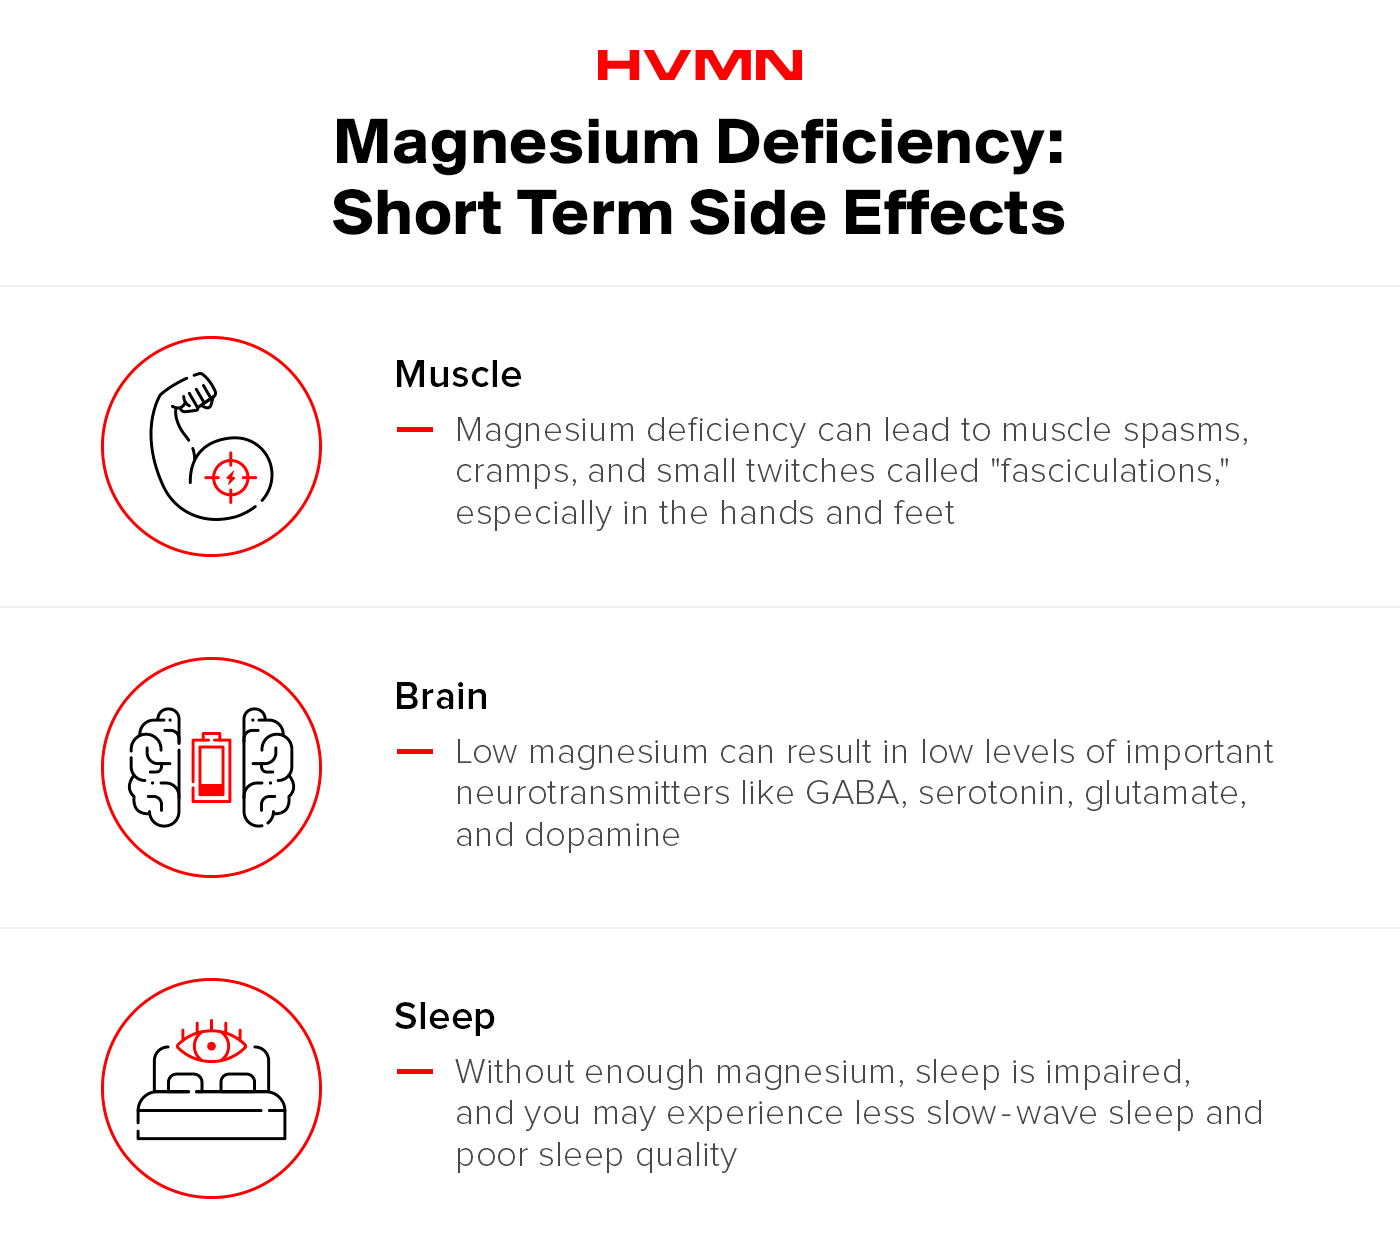 Short term side effects of magnesium supplementation.